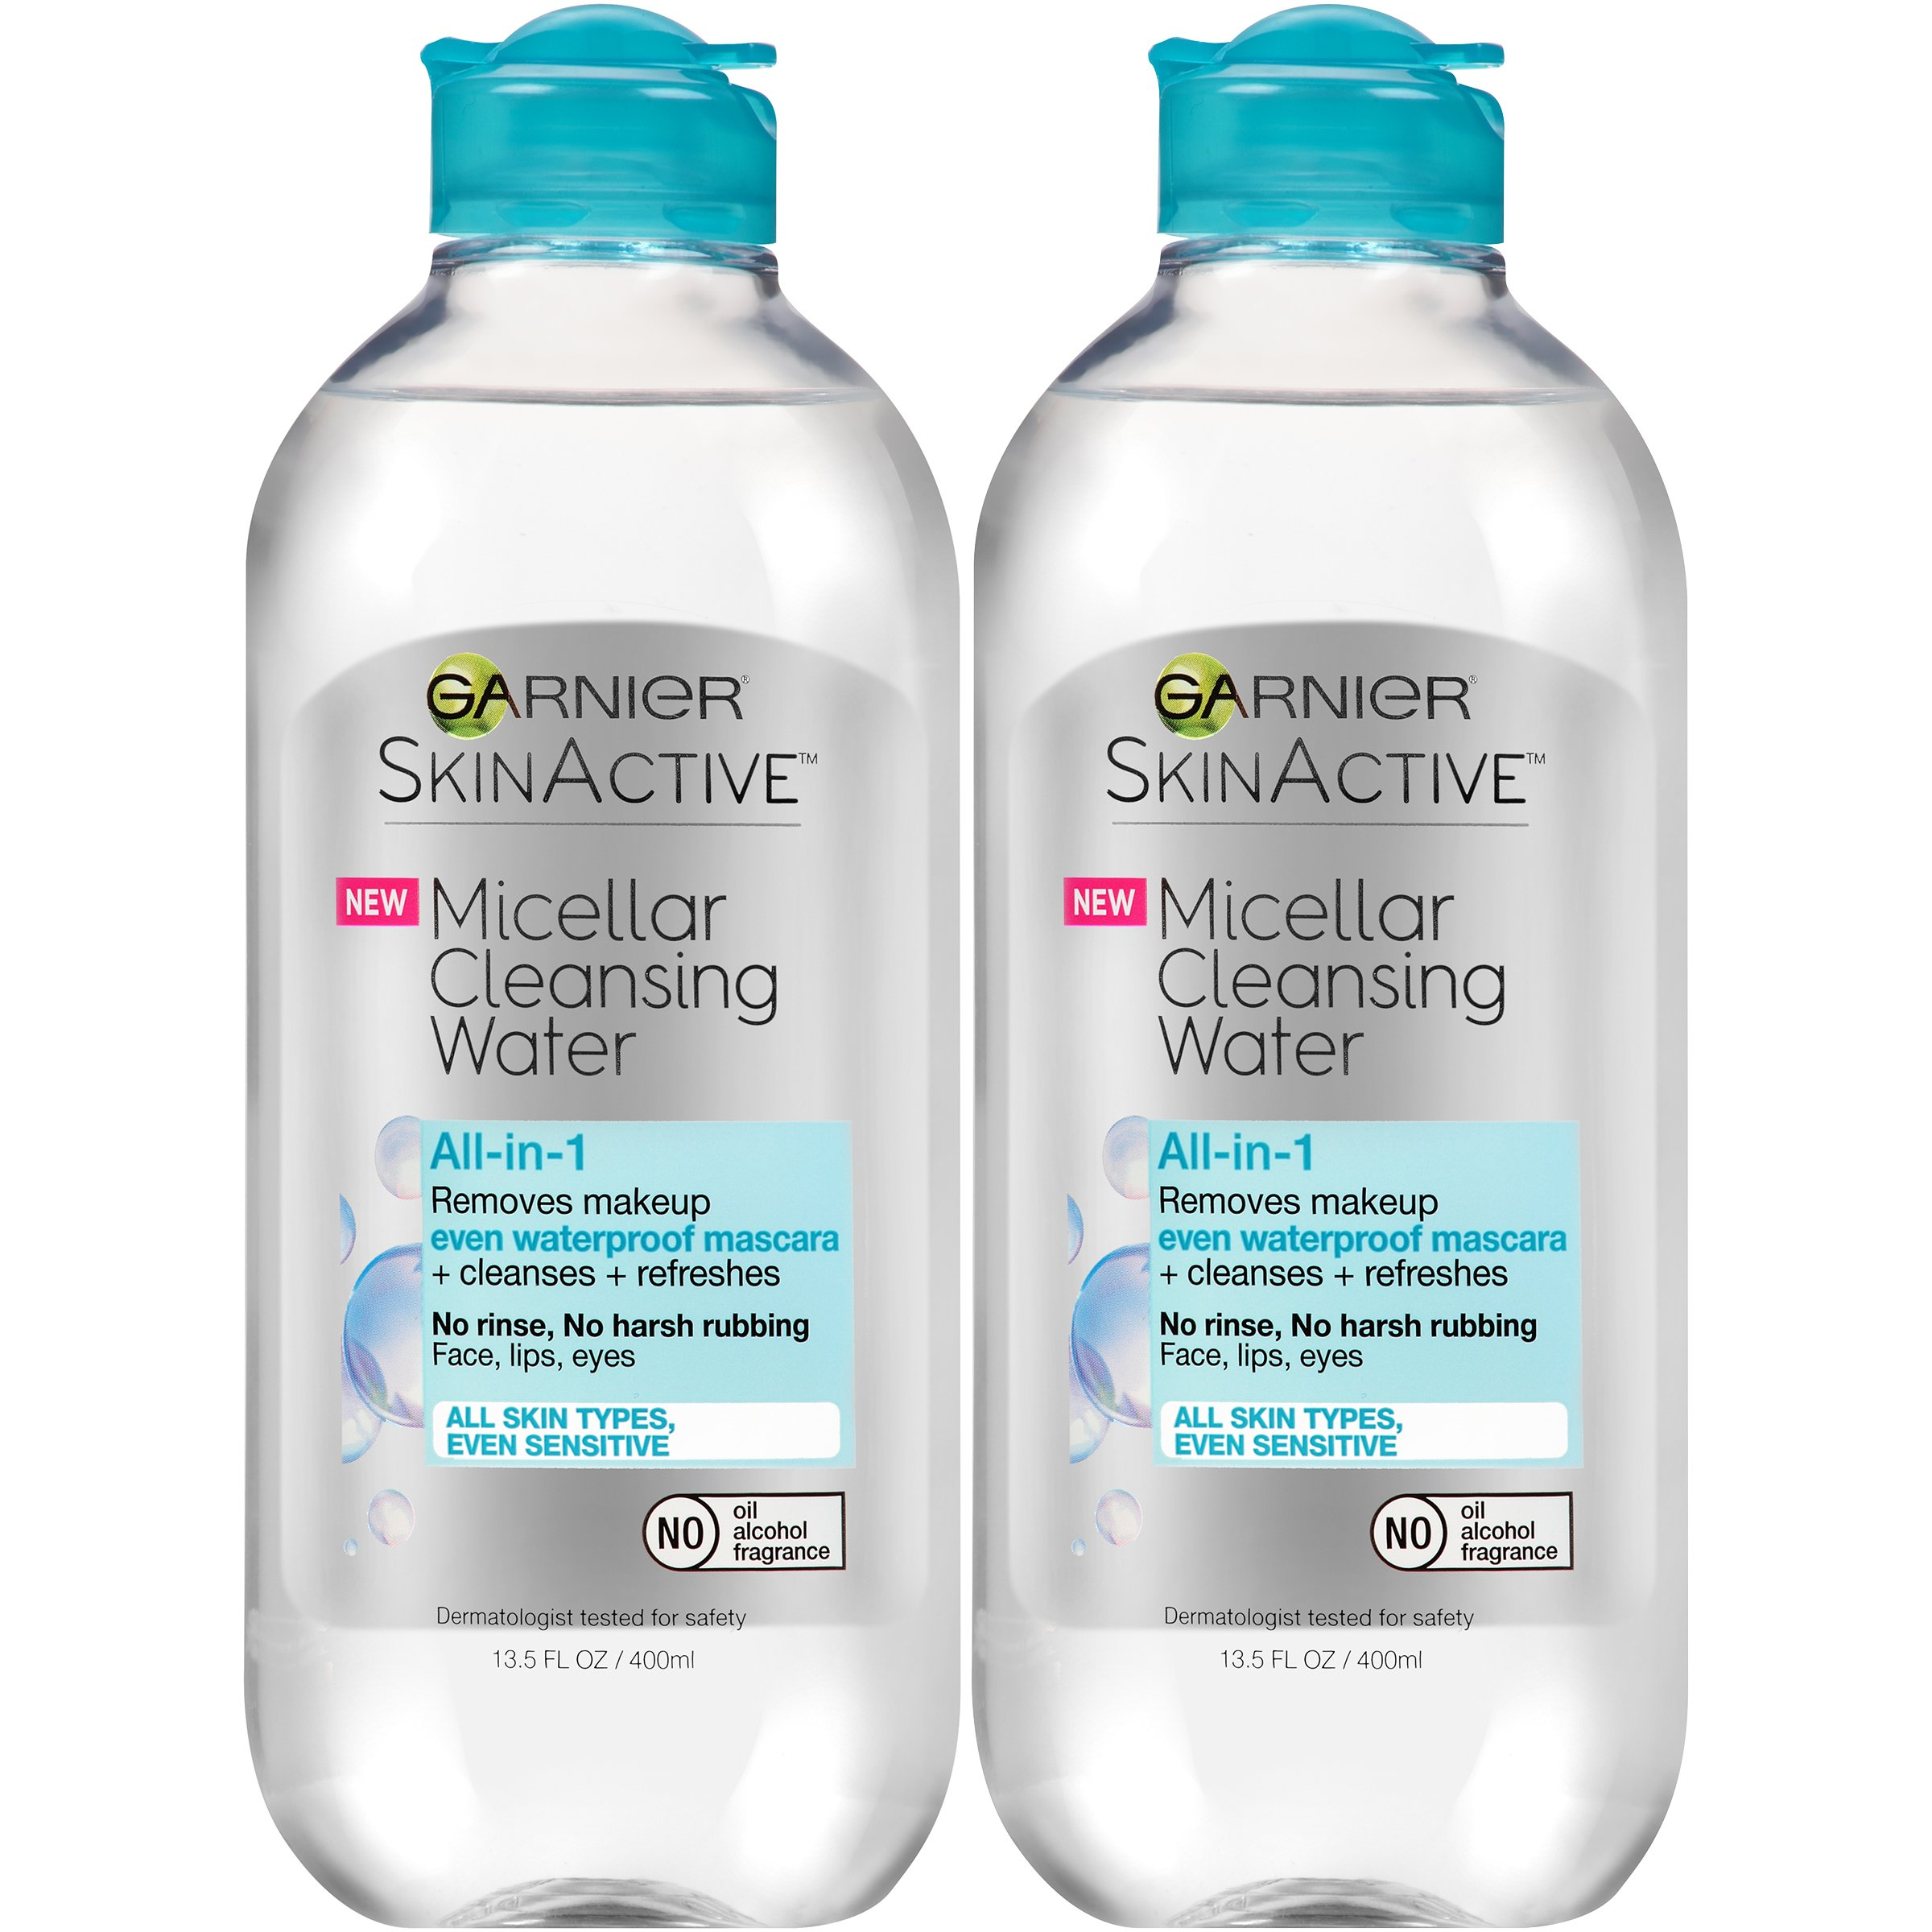 Garnier Skinactive Micellar Cleansing Water for Waterproof Makeup, 2 Count